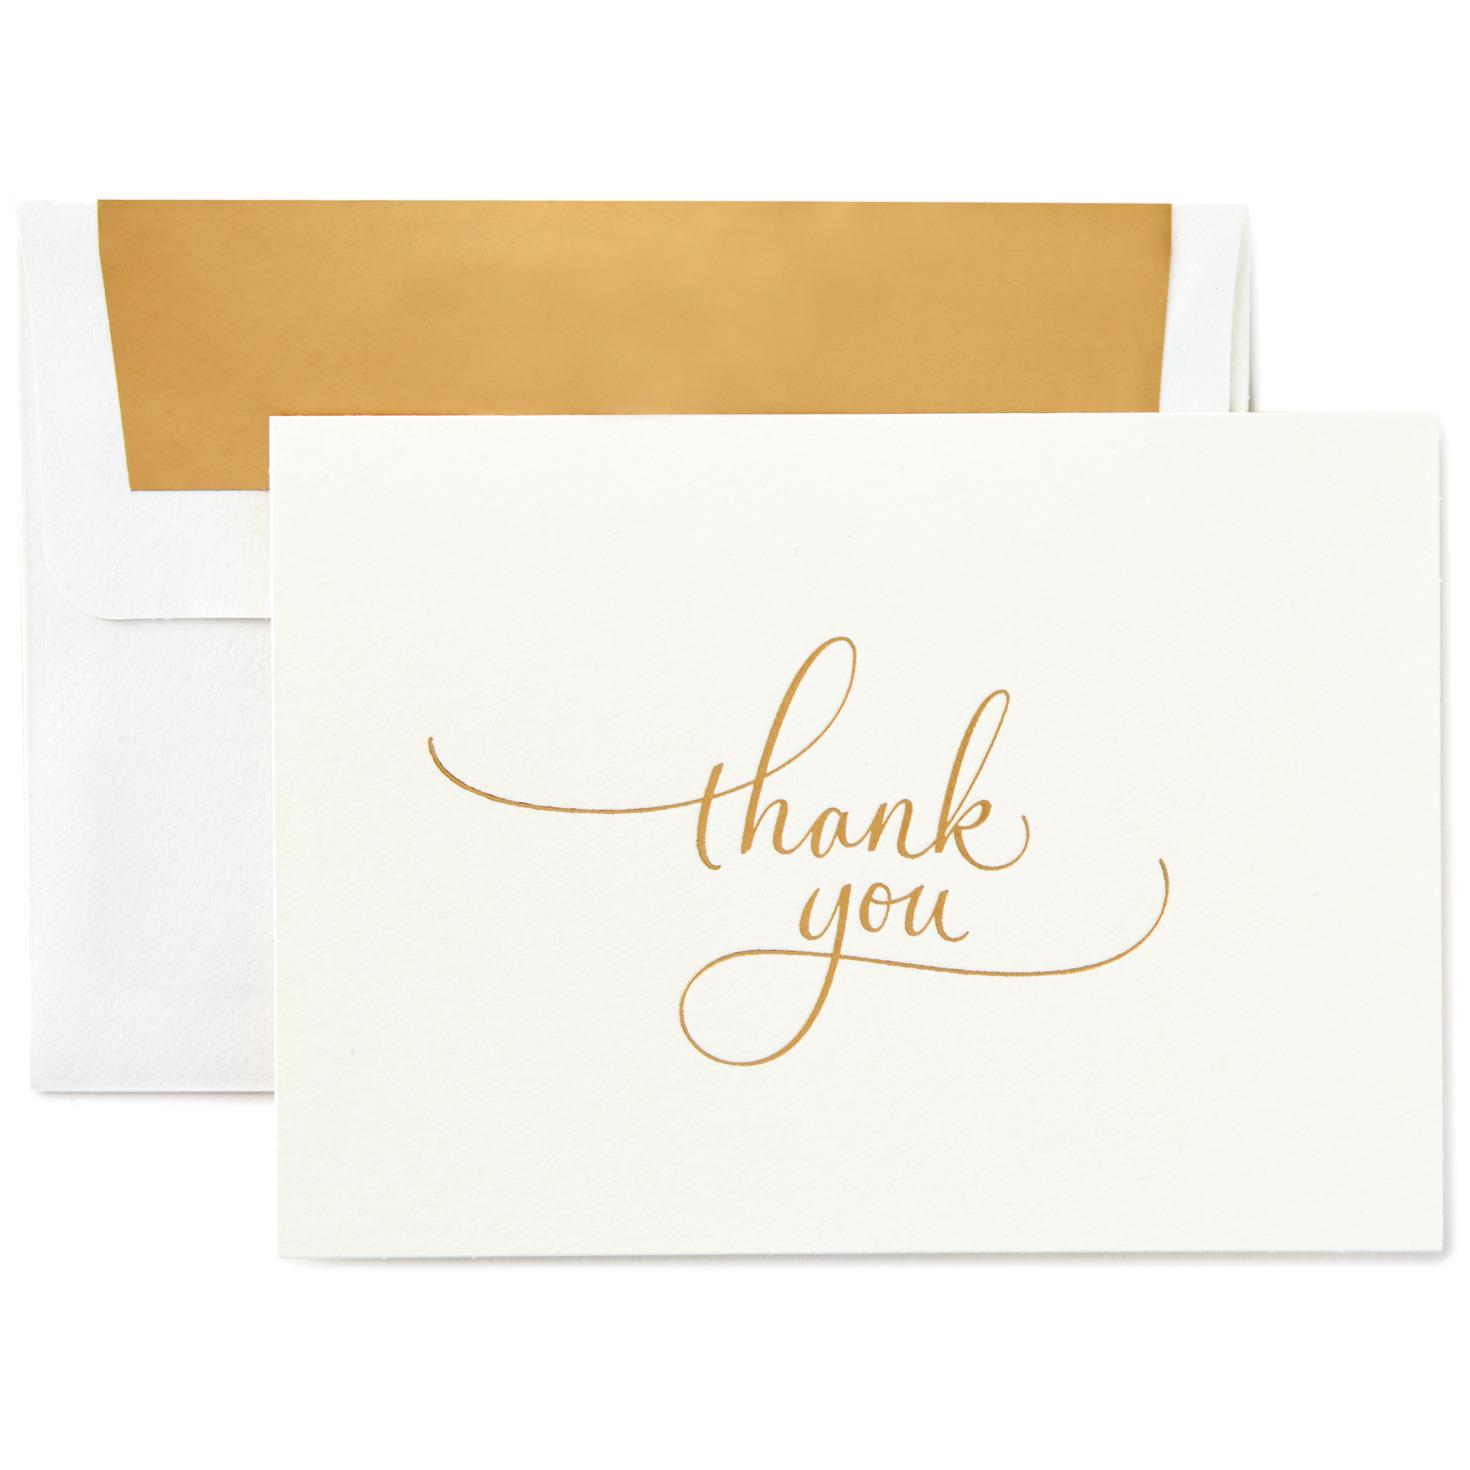 Gold Flourish Script Thank You Notes, Box of 10 - Note Cards - Hallmark